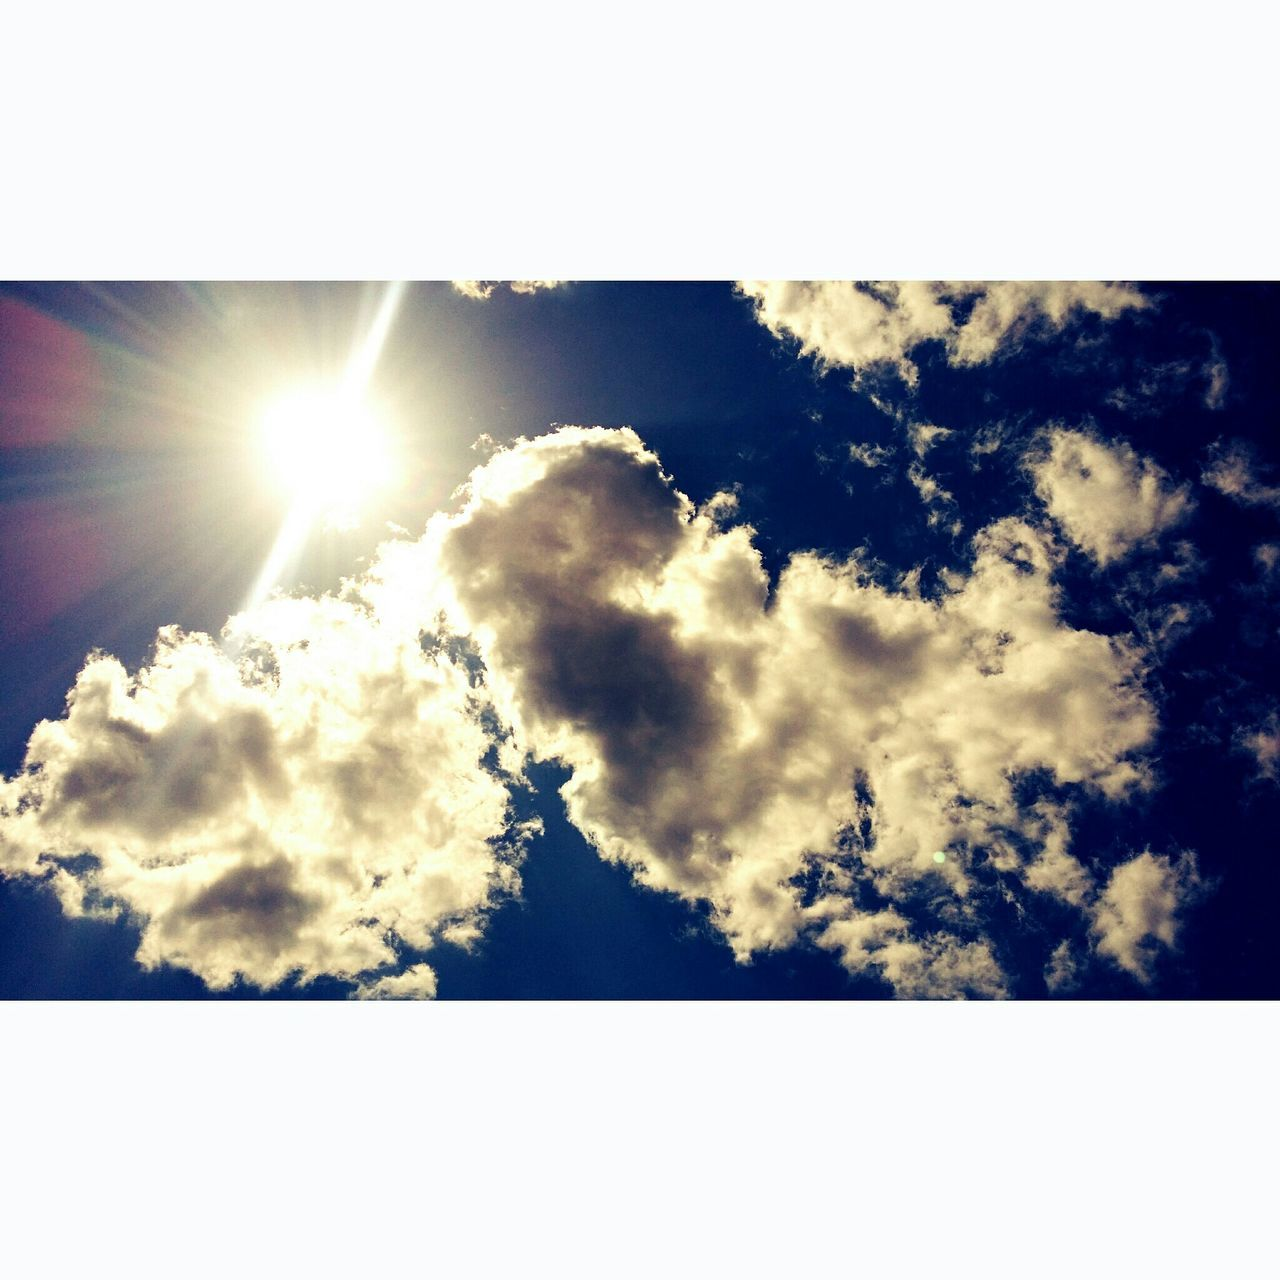 sun, nature, beauty in nature, sunlight, sky, sunbeam, bright, scenics, tranquility, outdoors, low angle view, cloud - sky, no people, day, sunshine